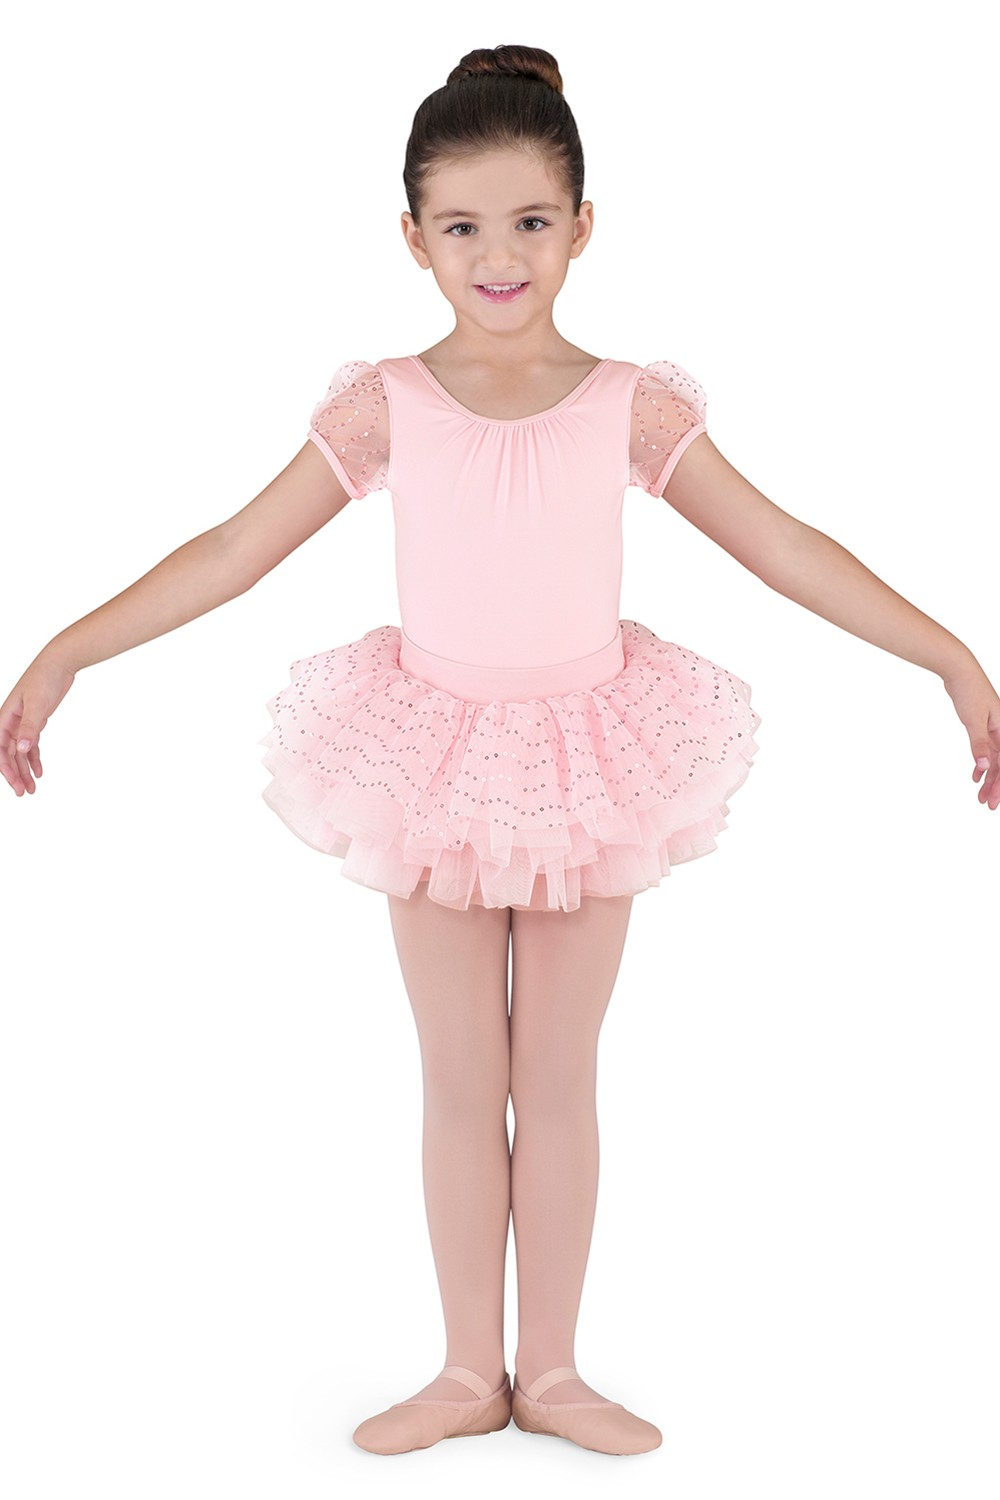 Aquila Children's Dance Leotards